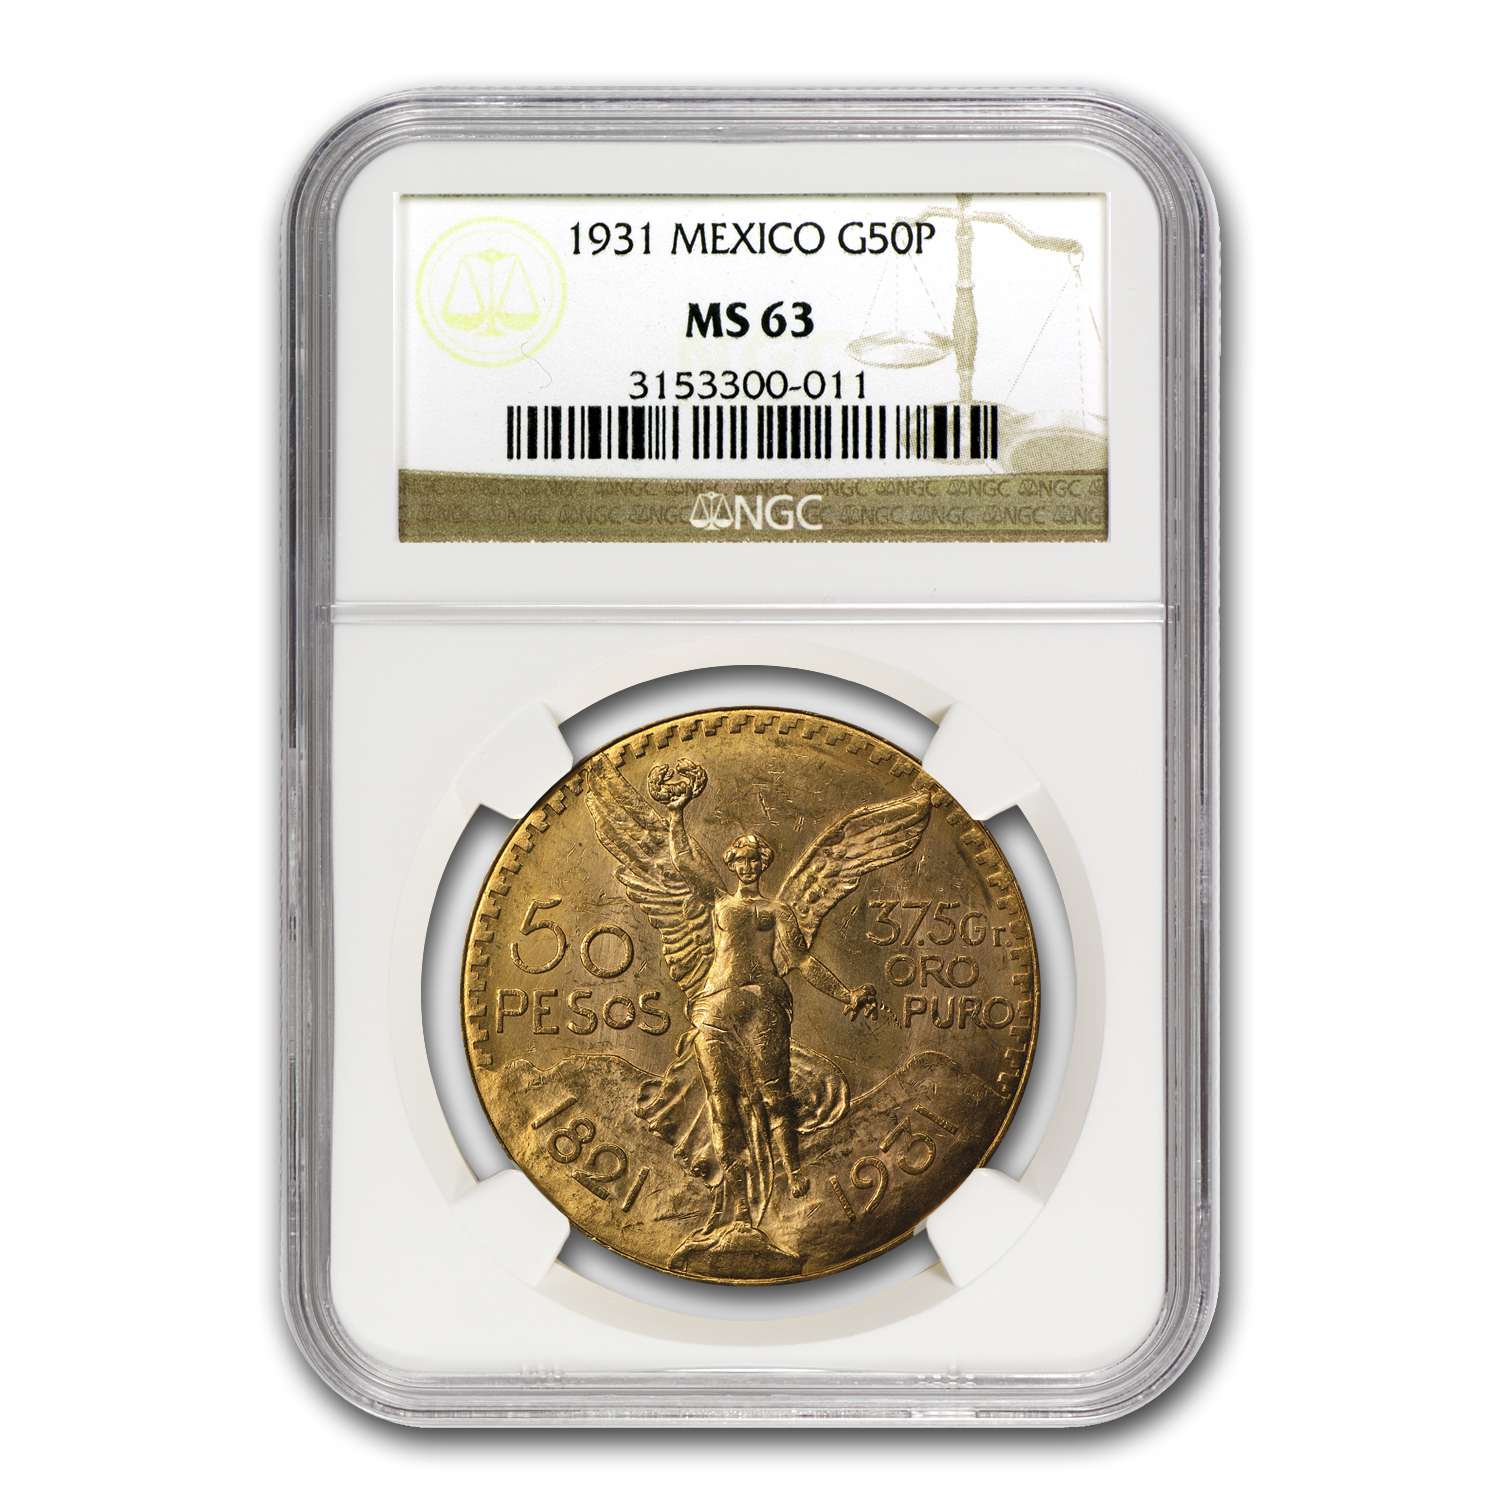 1931 Mexico Gold 50 Pesos MS-63 NGC